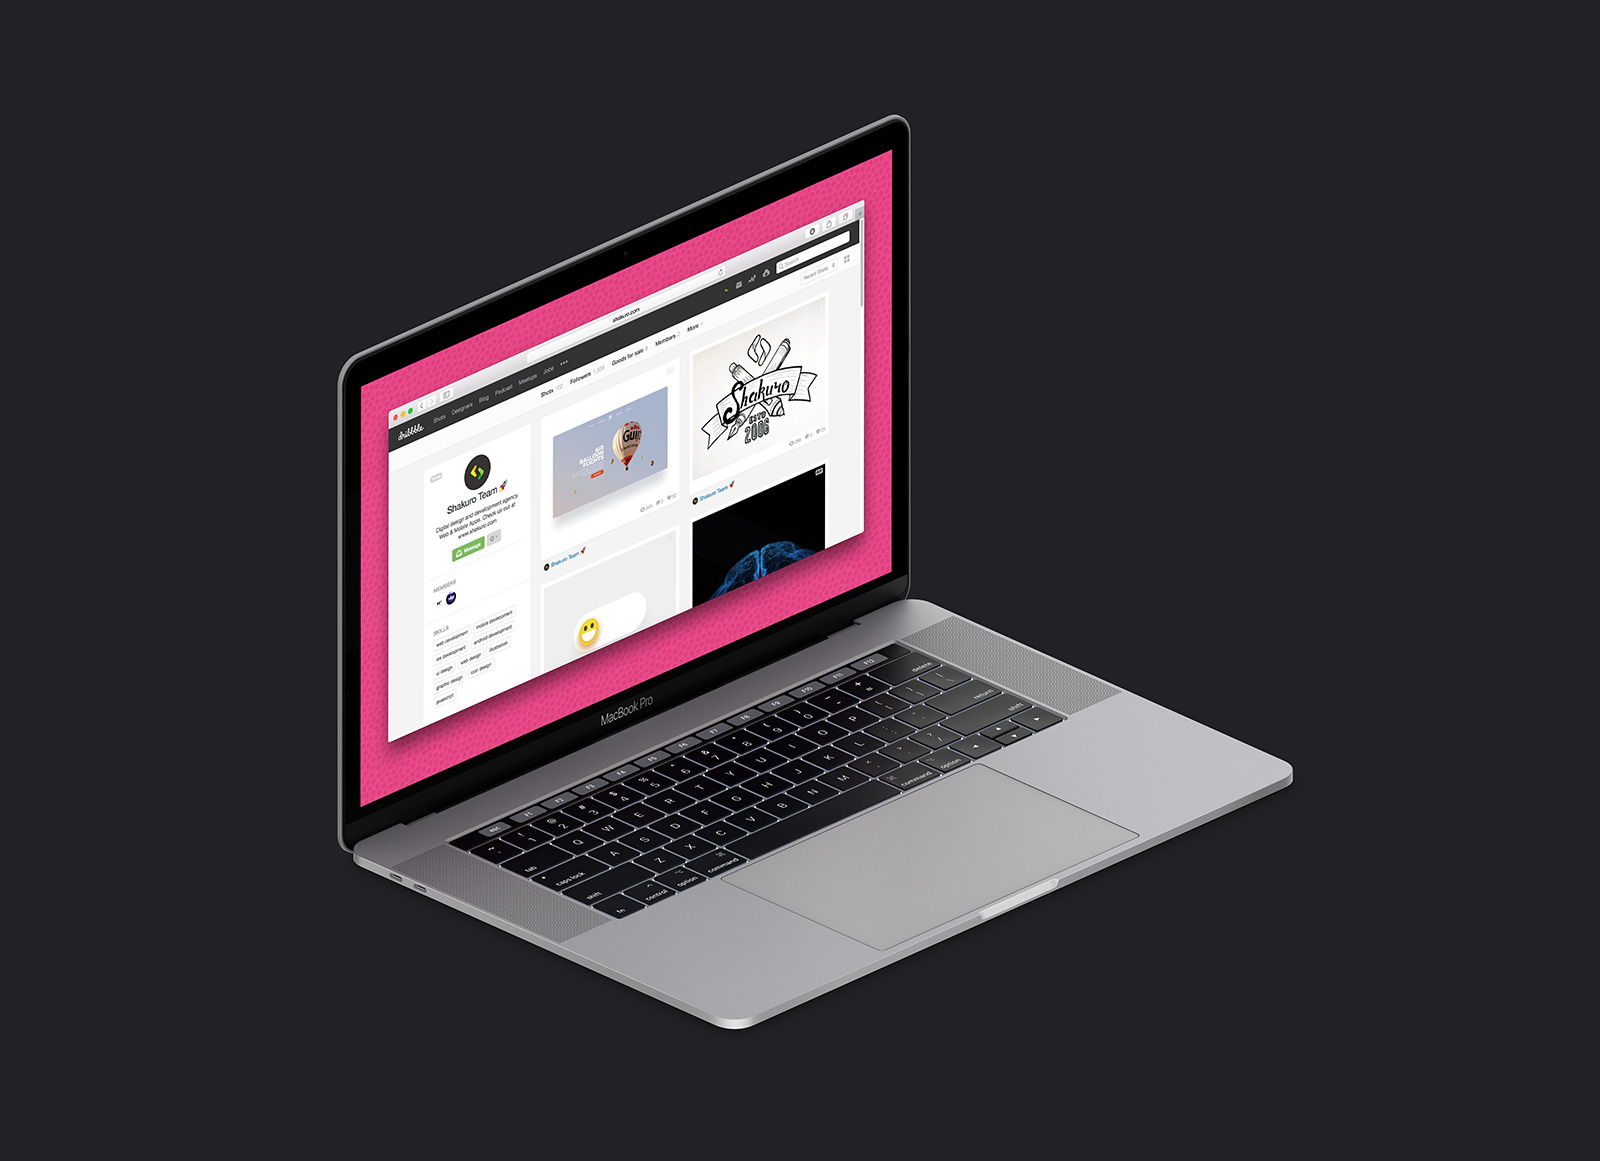 Free-Isolate-Macbook-Pro-Mockup-PSD